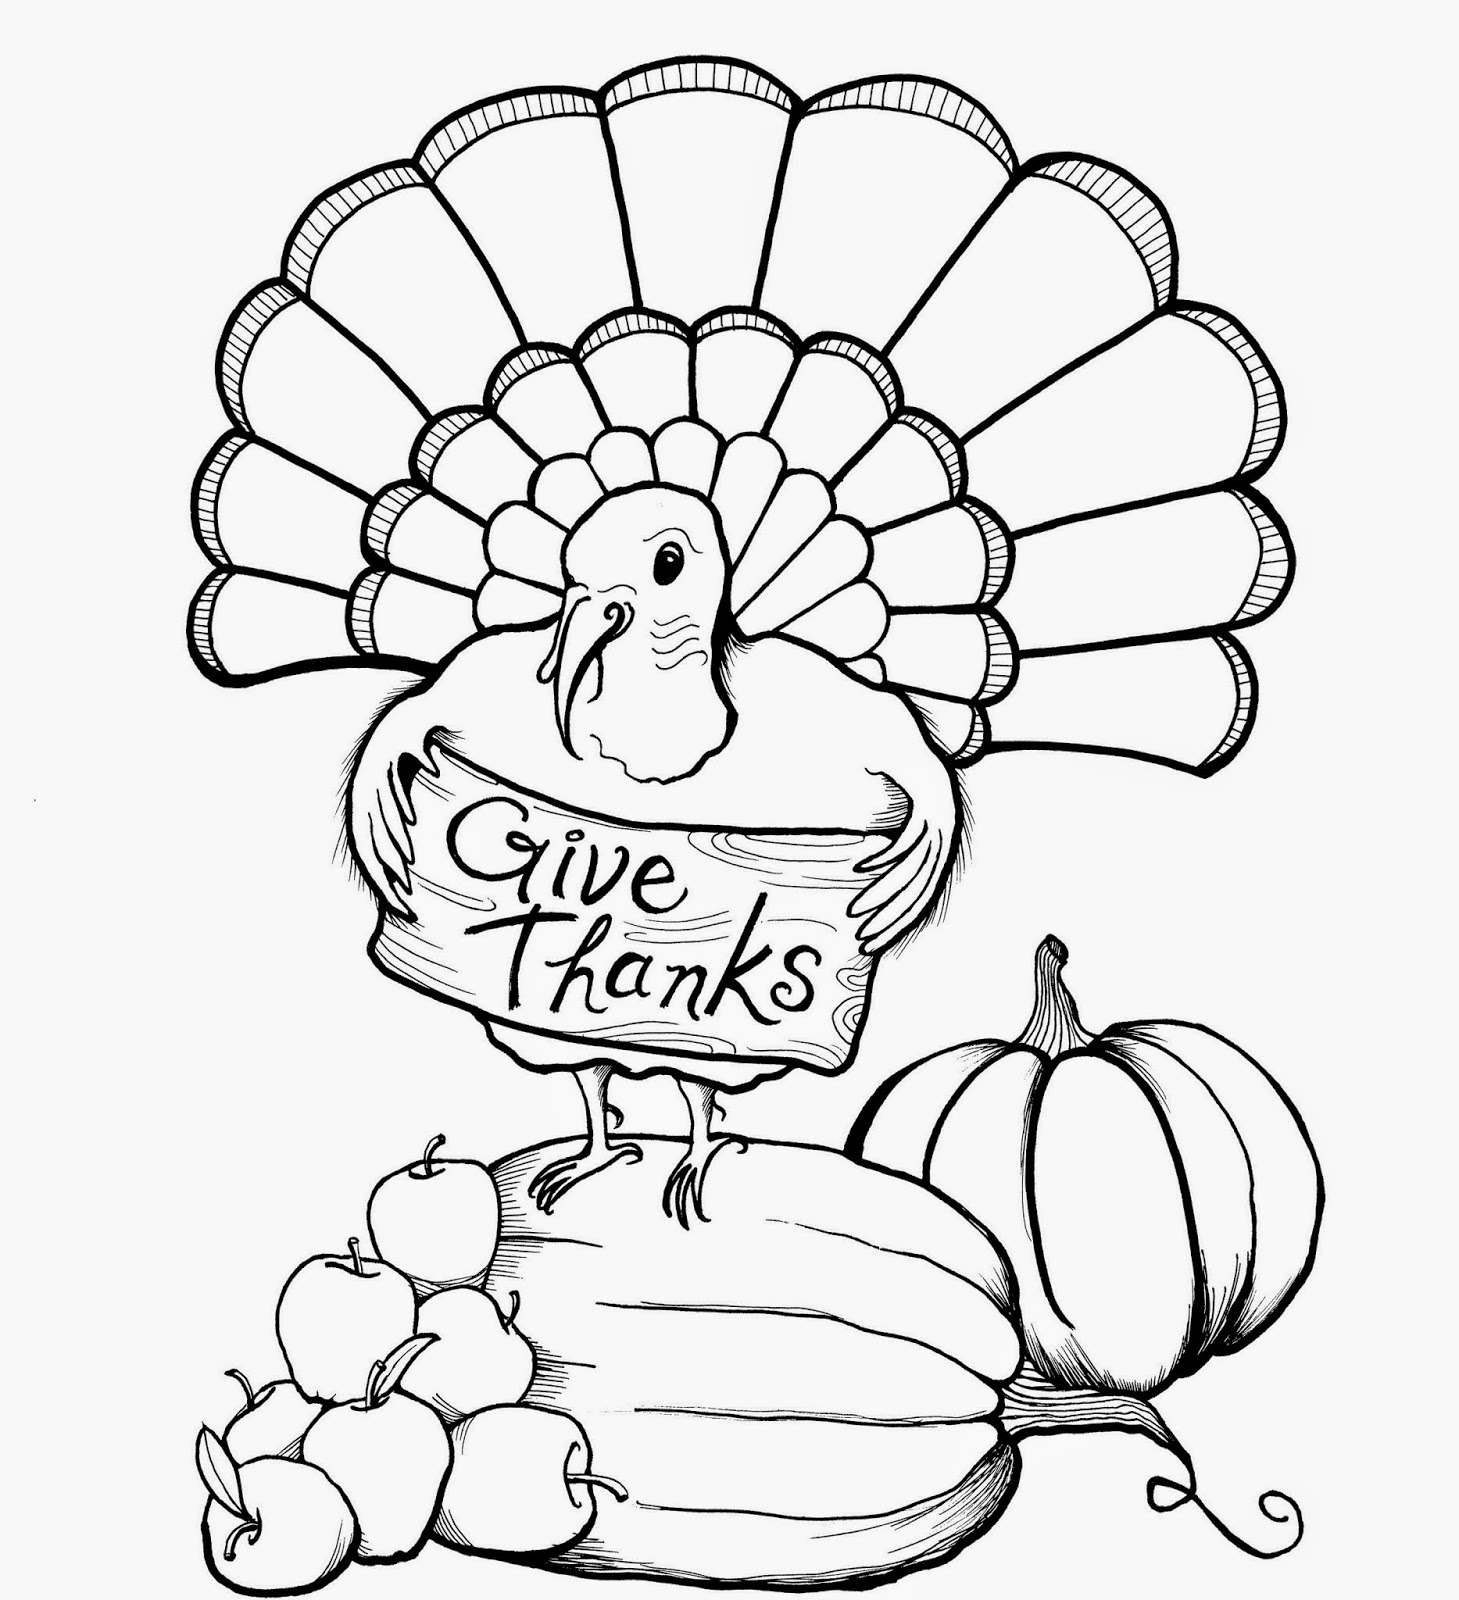 free coloring pages thanksgiving printable thanksgiving coloring pages for kids cool2bkids coloring pages thanksgiving free